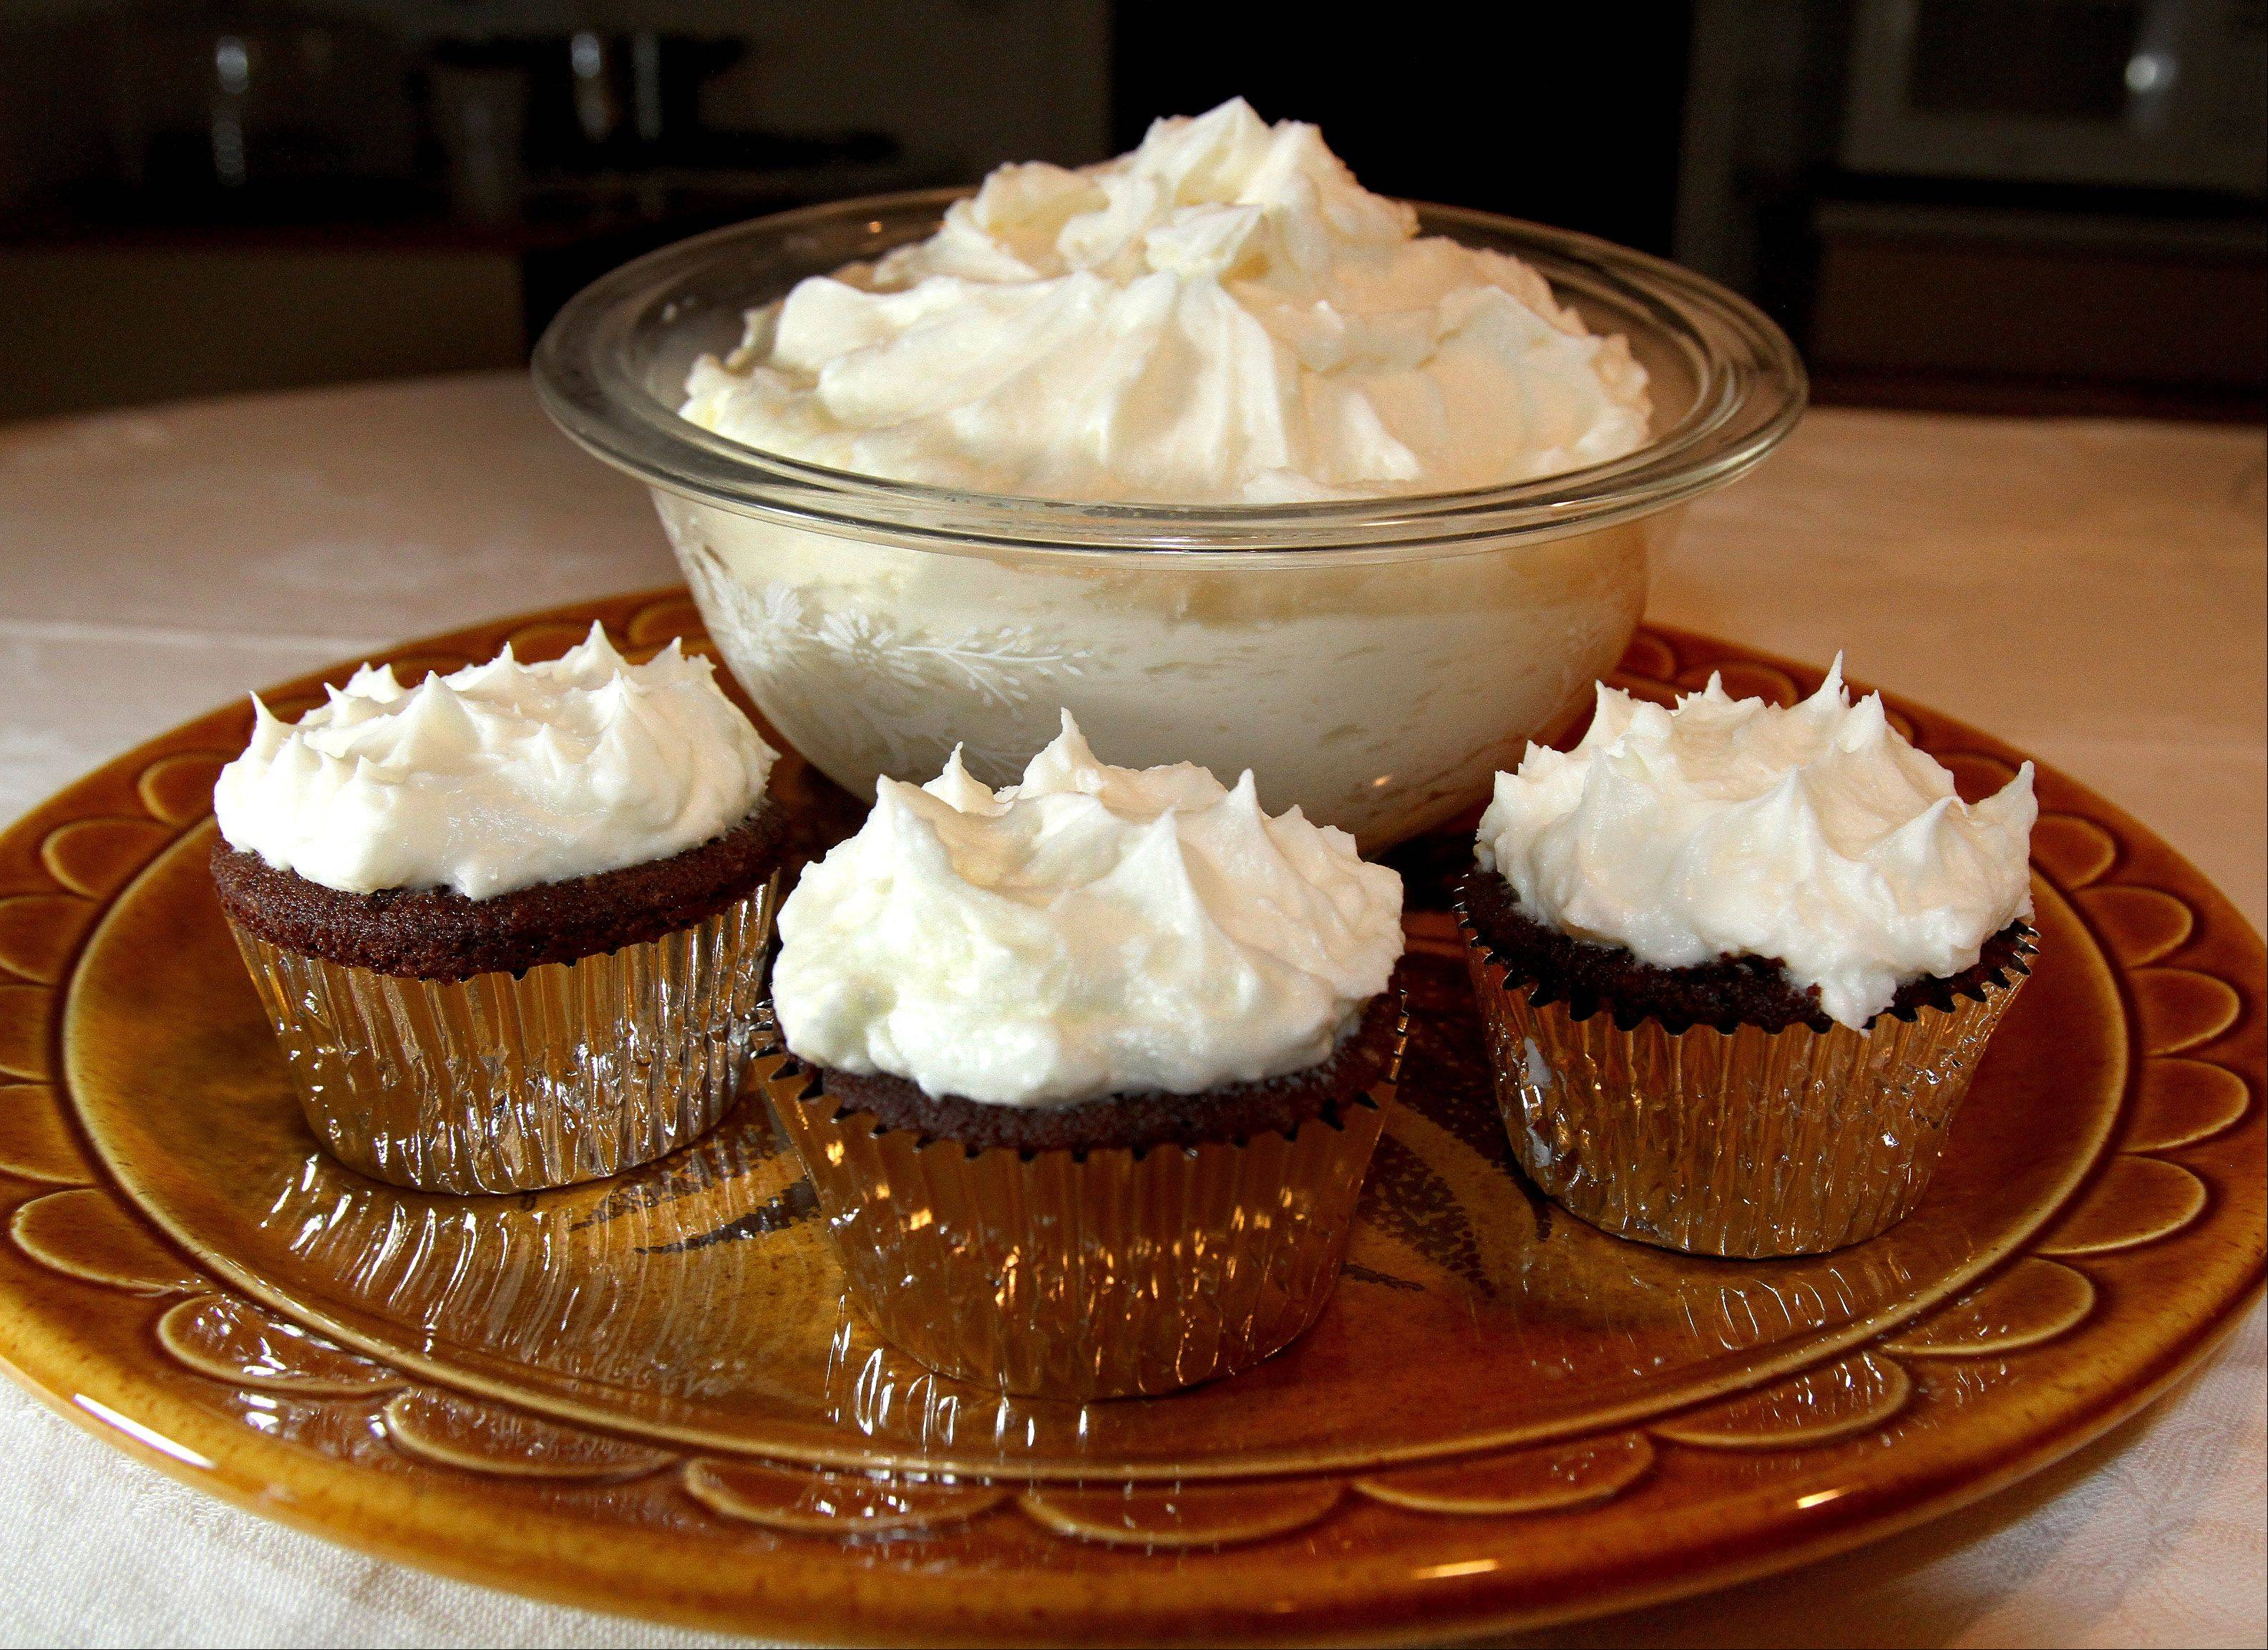 Butter and orange-flavoring make this frosting a good fit for after-school cupcakes or a tiered wedding cake.